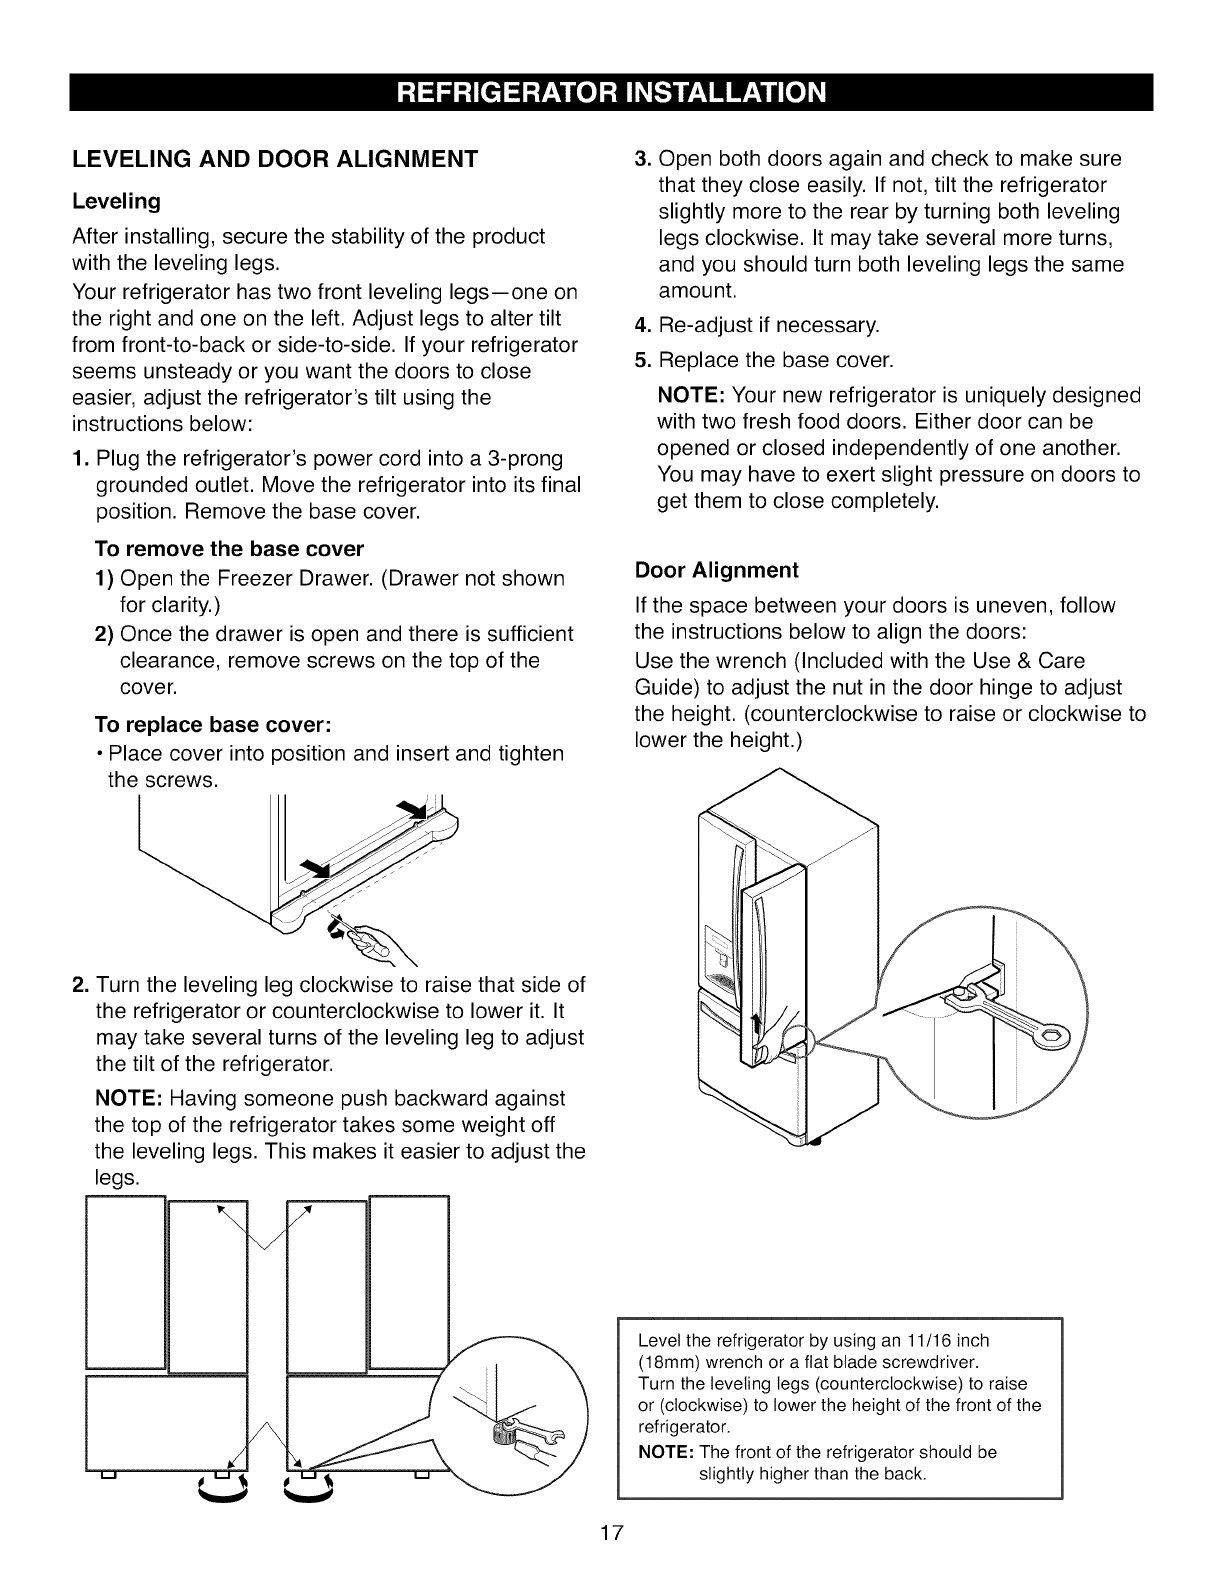 How To Level A Kenmore Refrigerator Page 17 Of Kenmore Refrigerator 7957105 User Guide